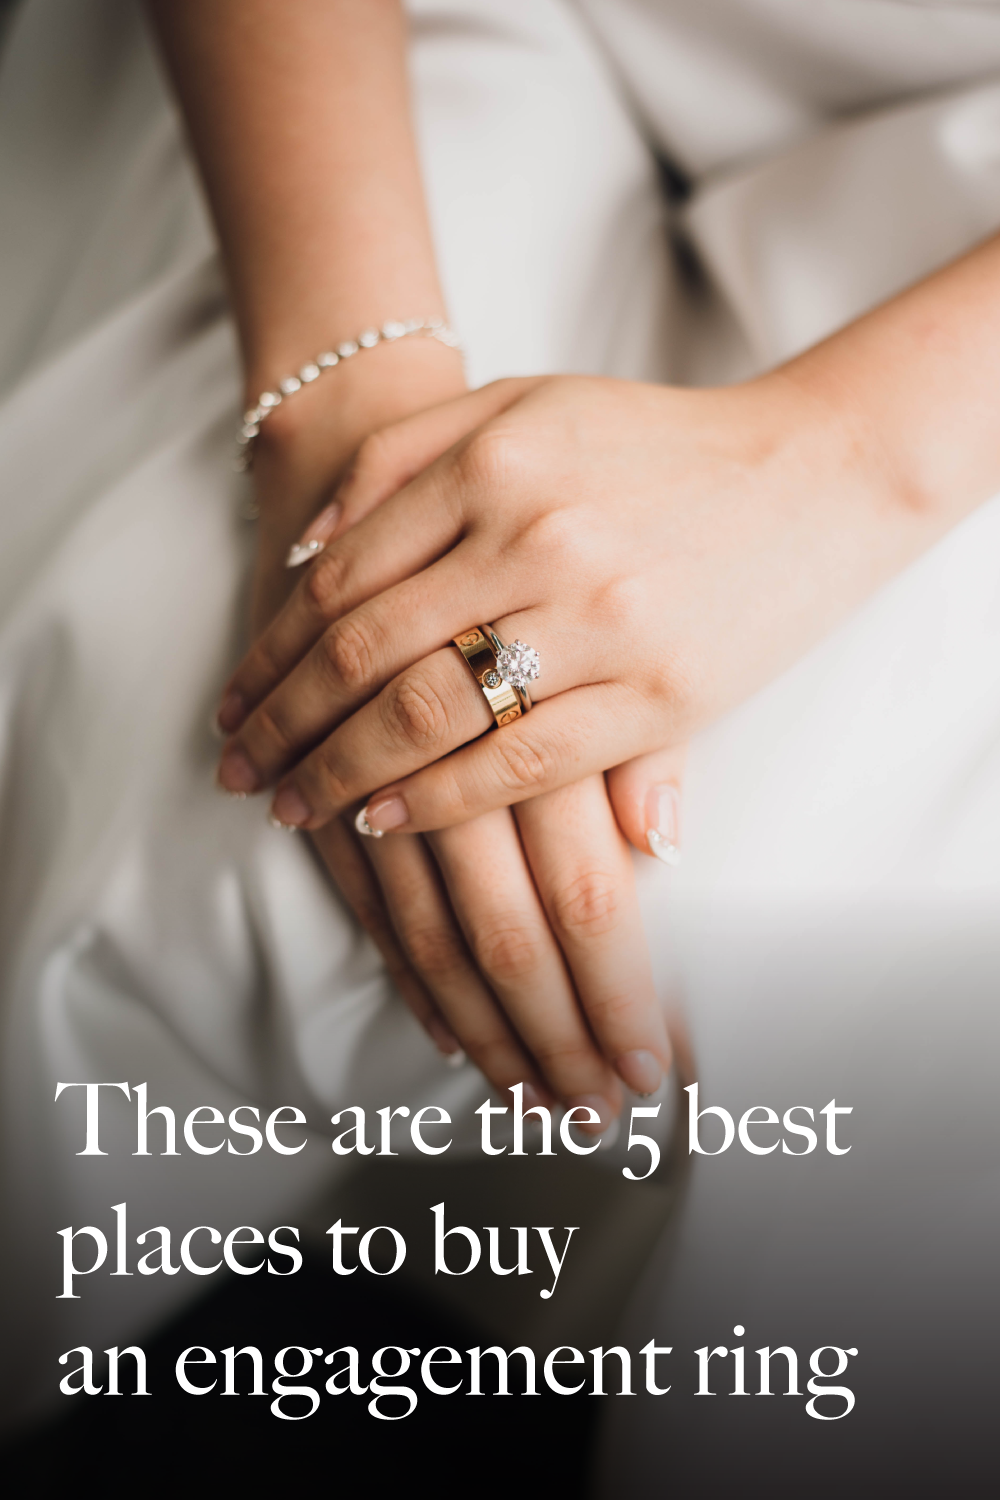 Before you can find the perfect ring, you need to know